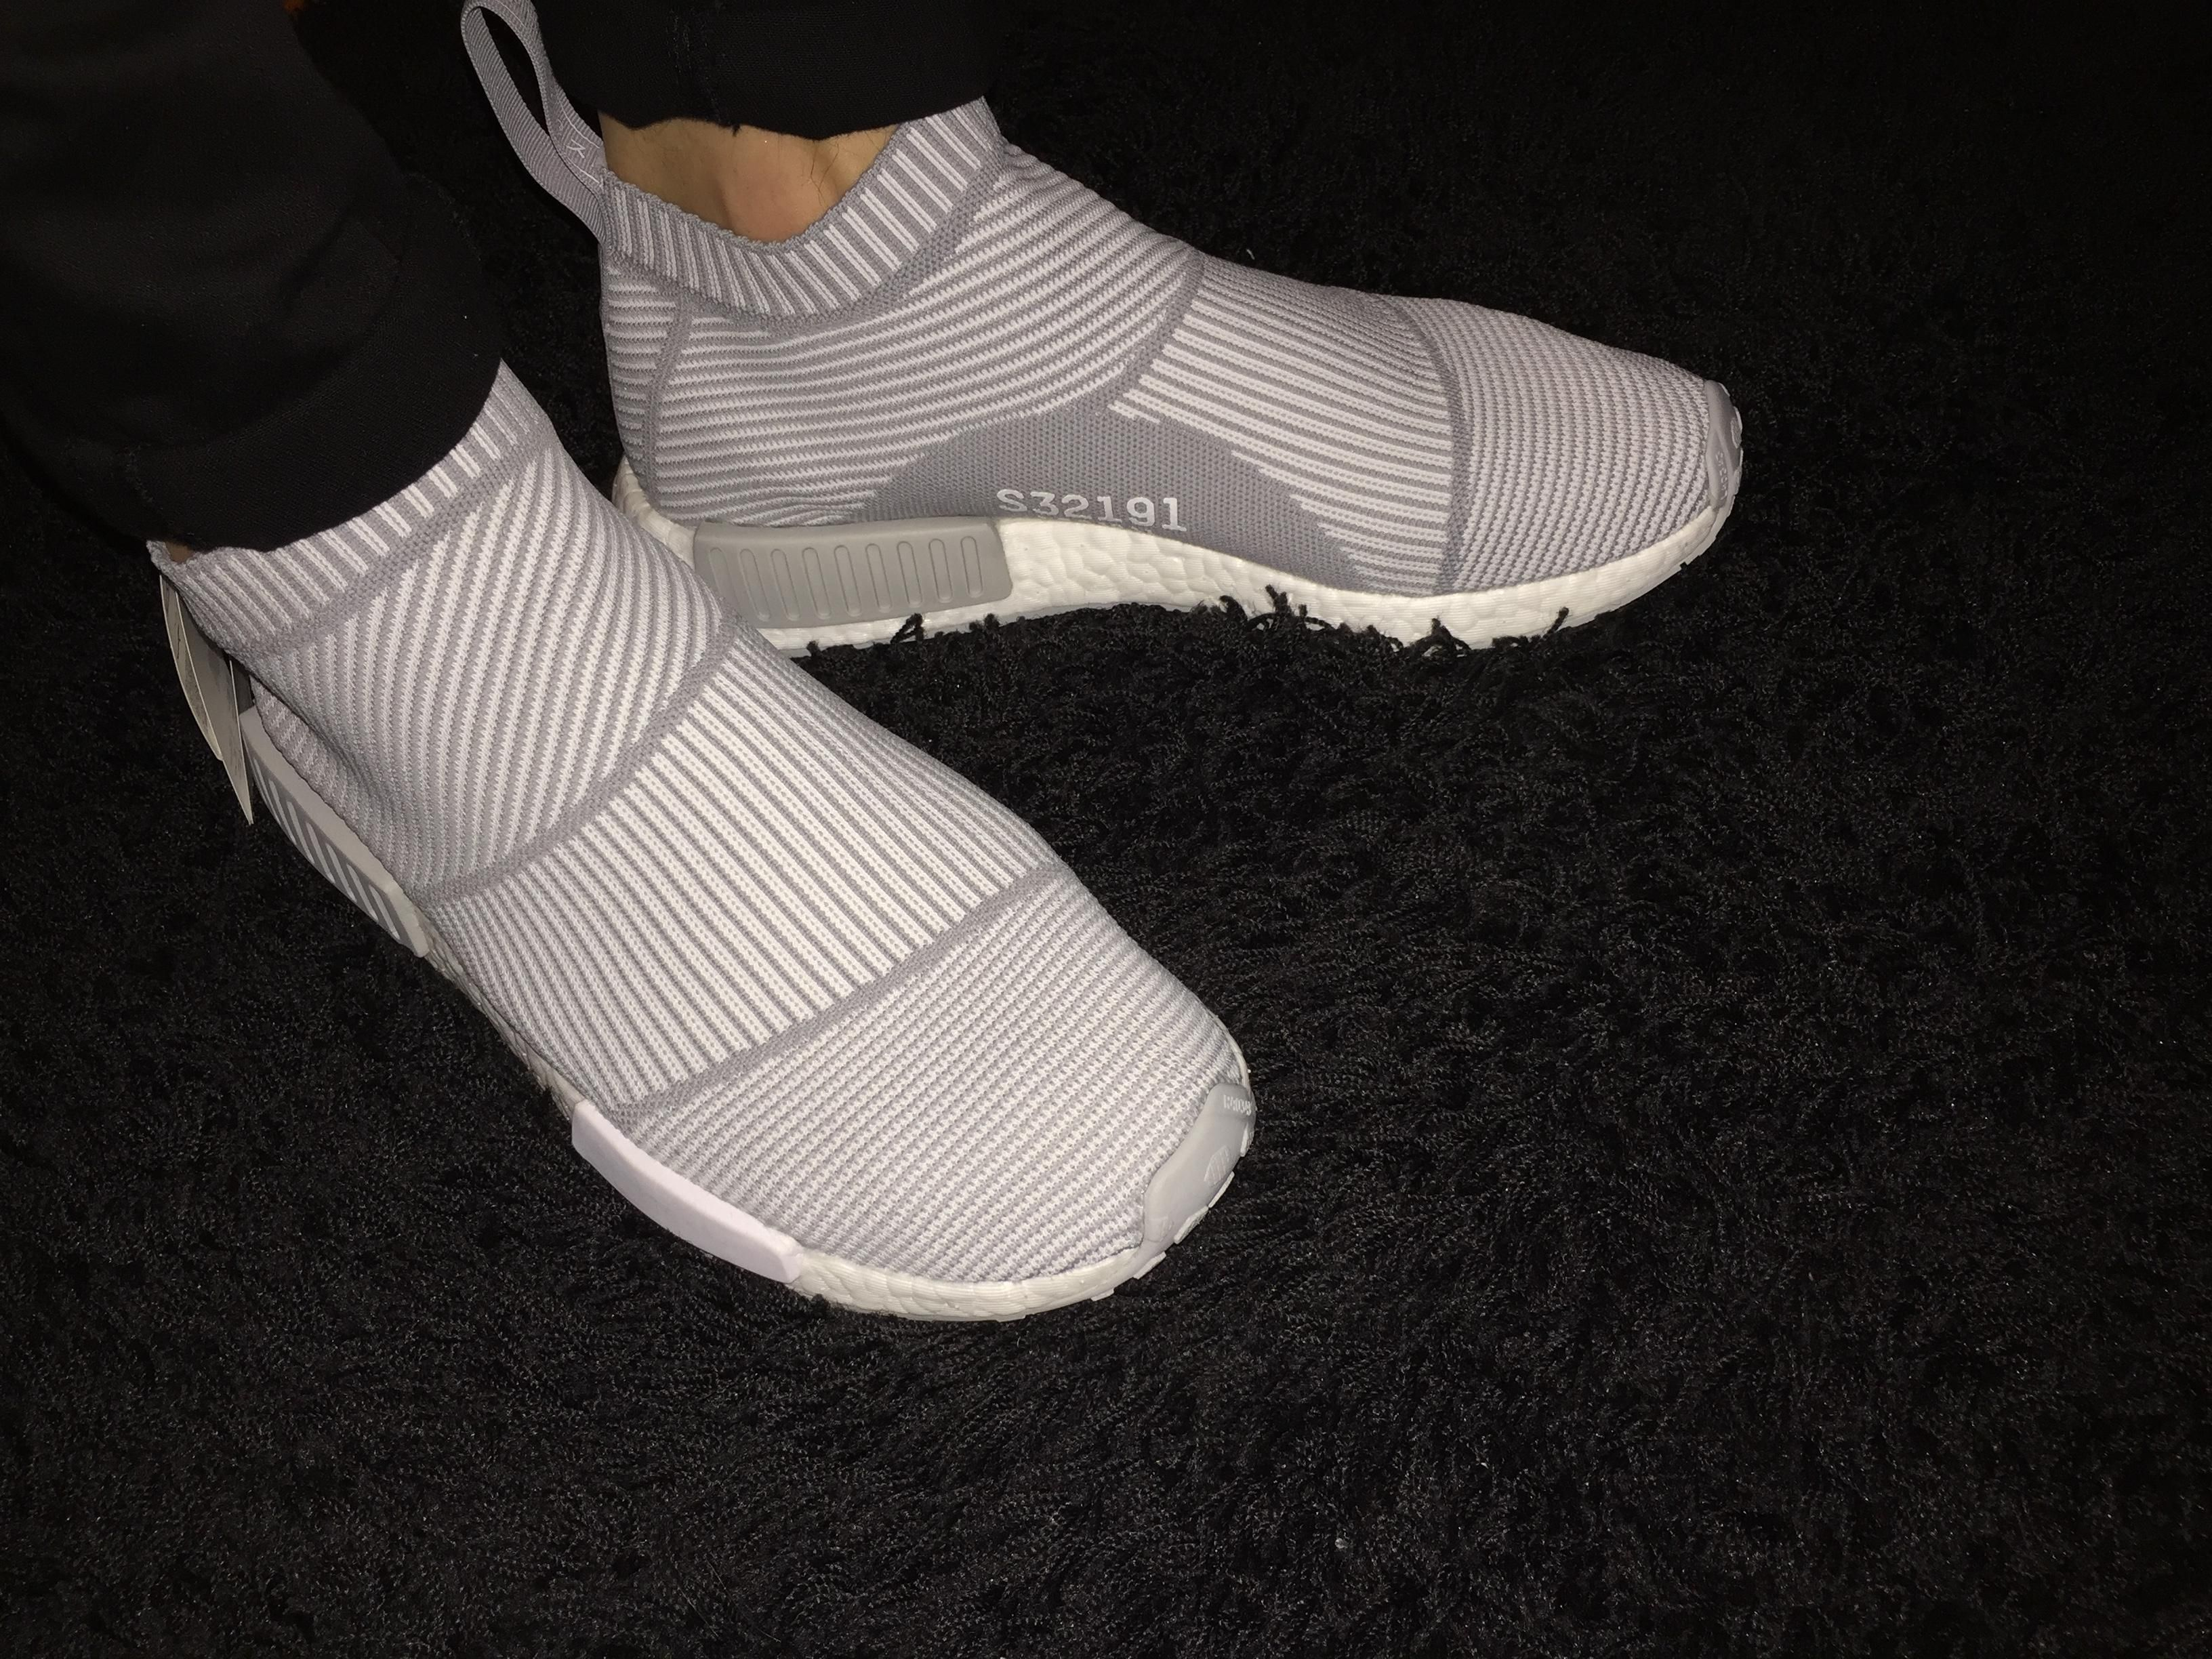 [PICKUP] Adidas NMD City Sock Grey (Unreleased) - ON FEET